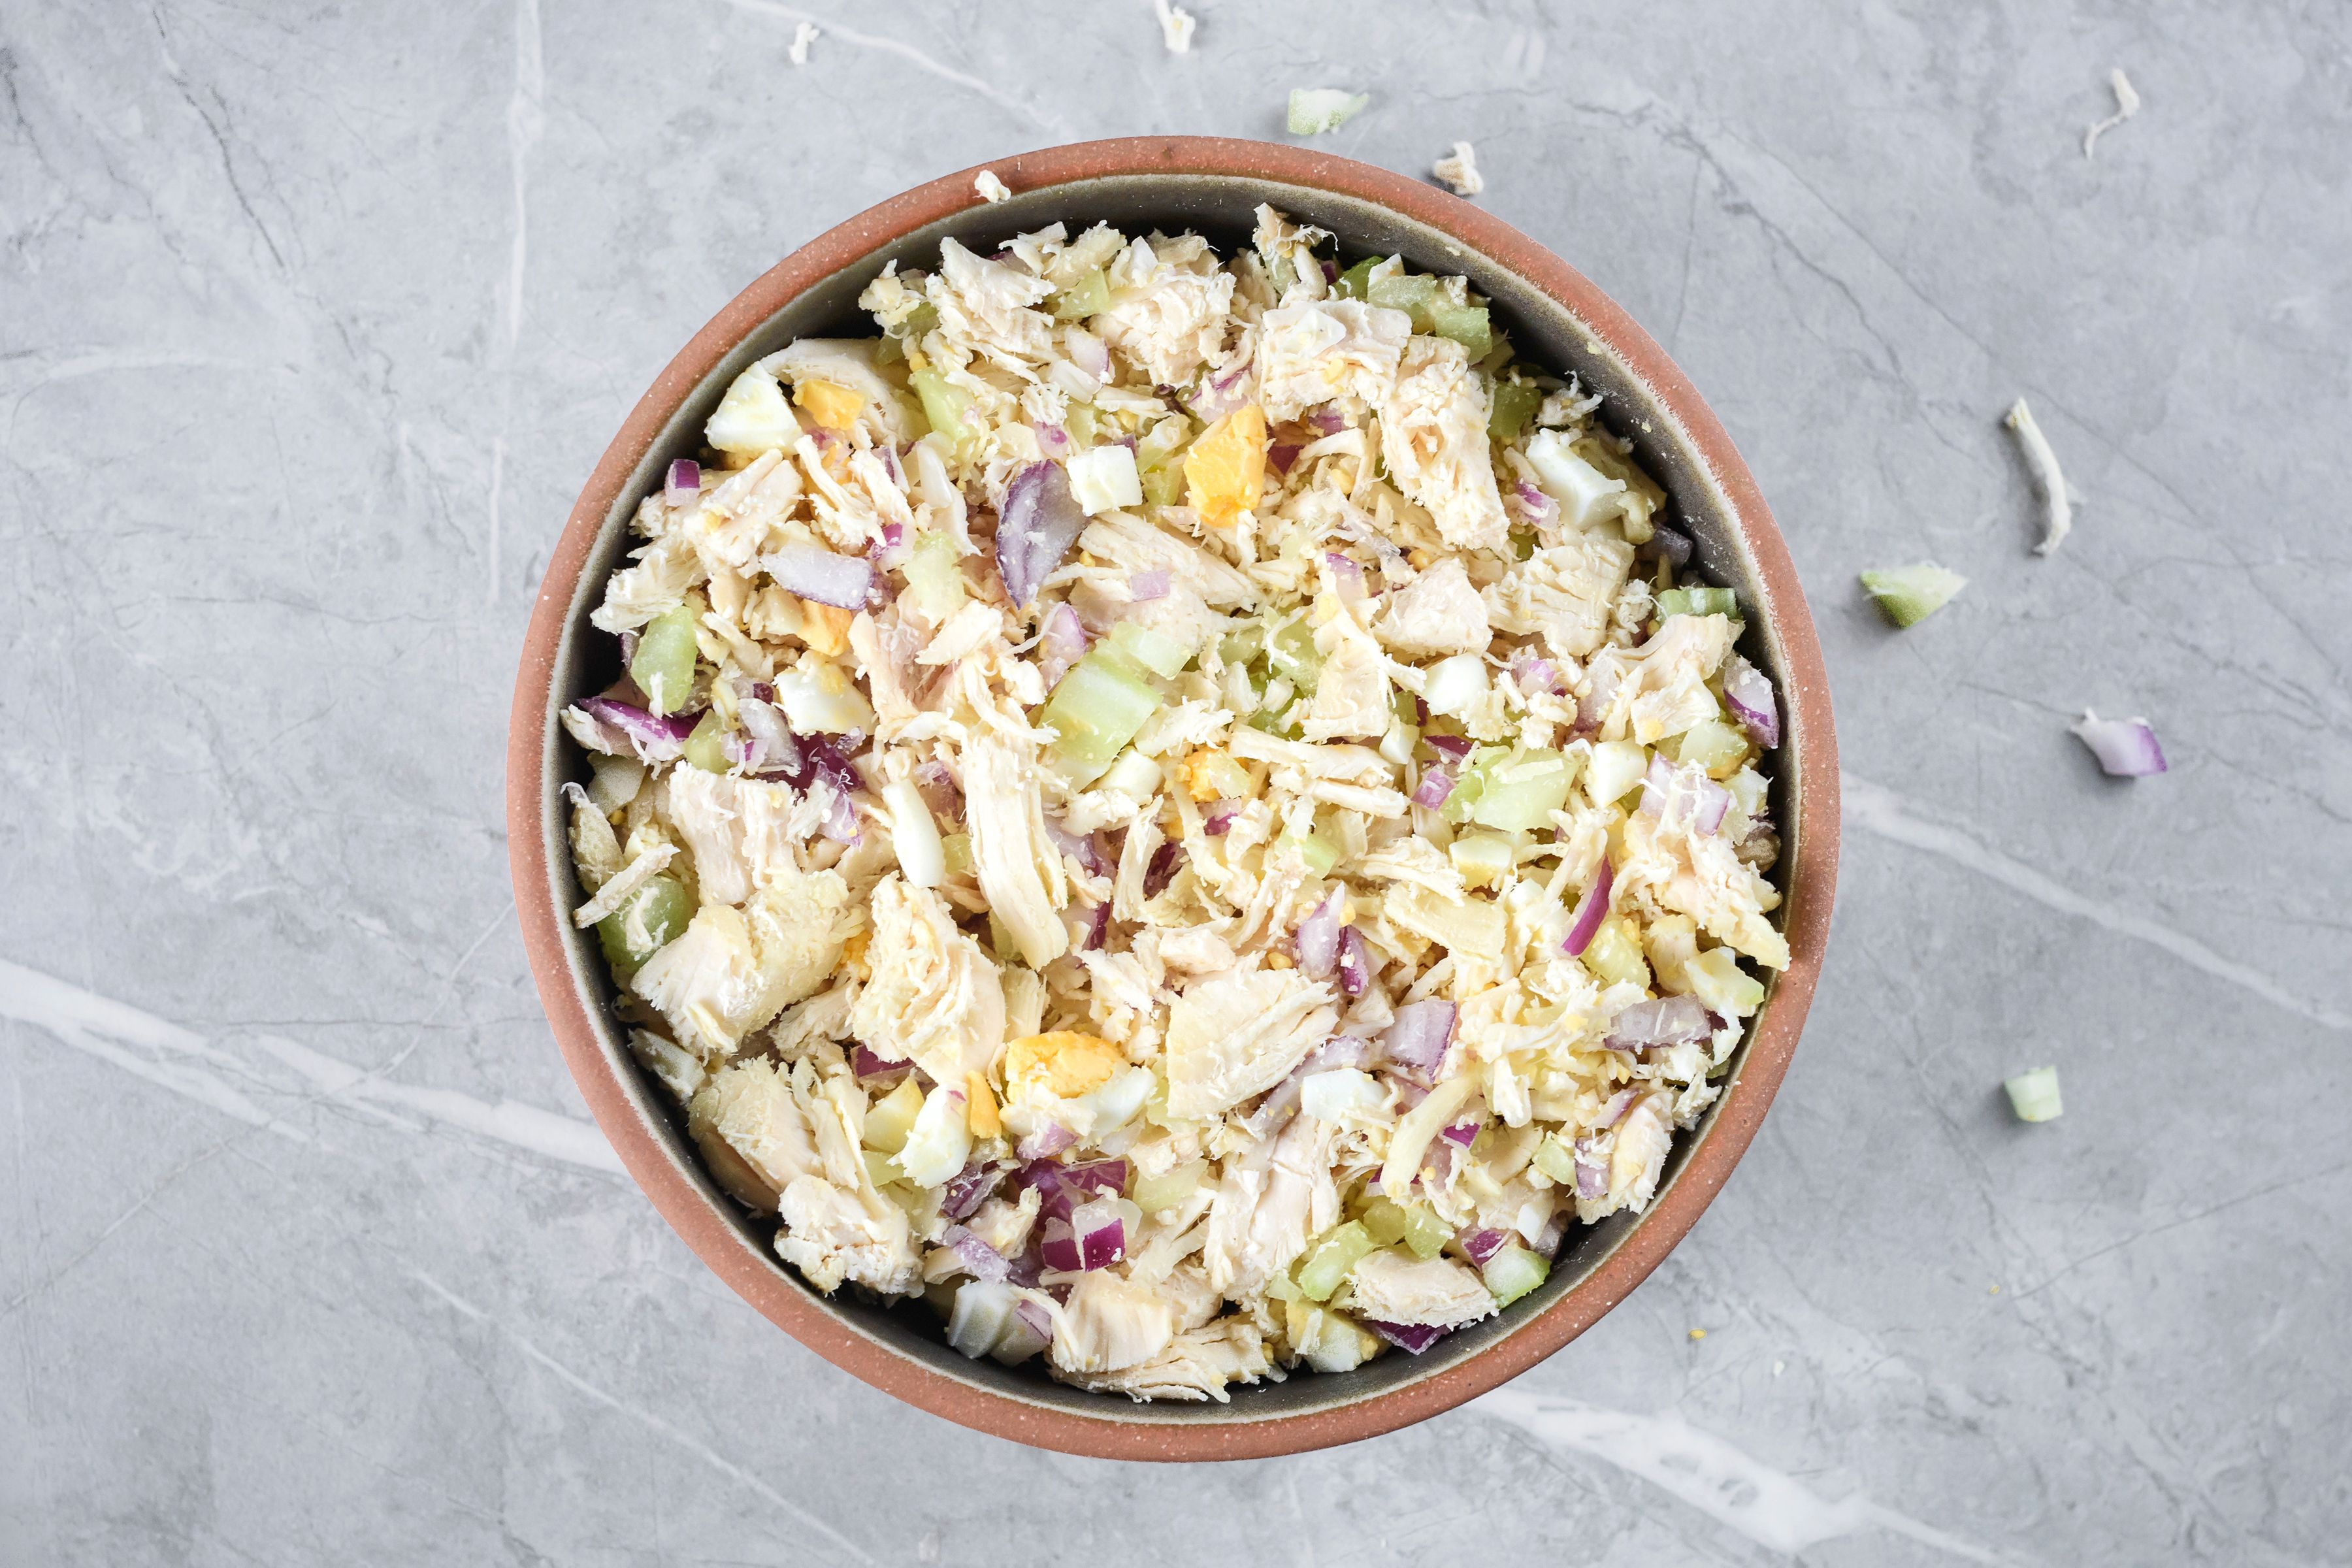 Combine cooked chopped chicken and celery